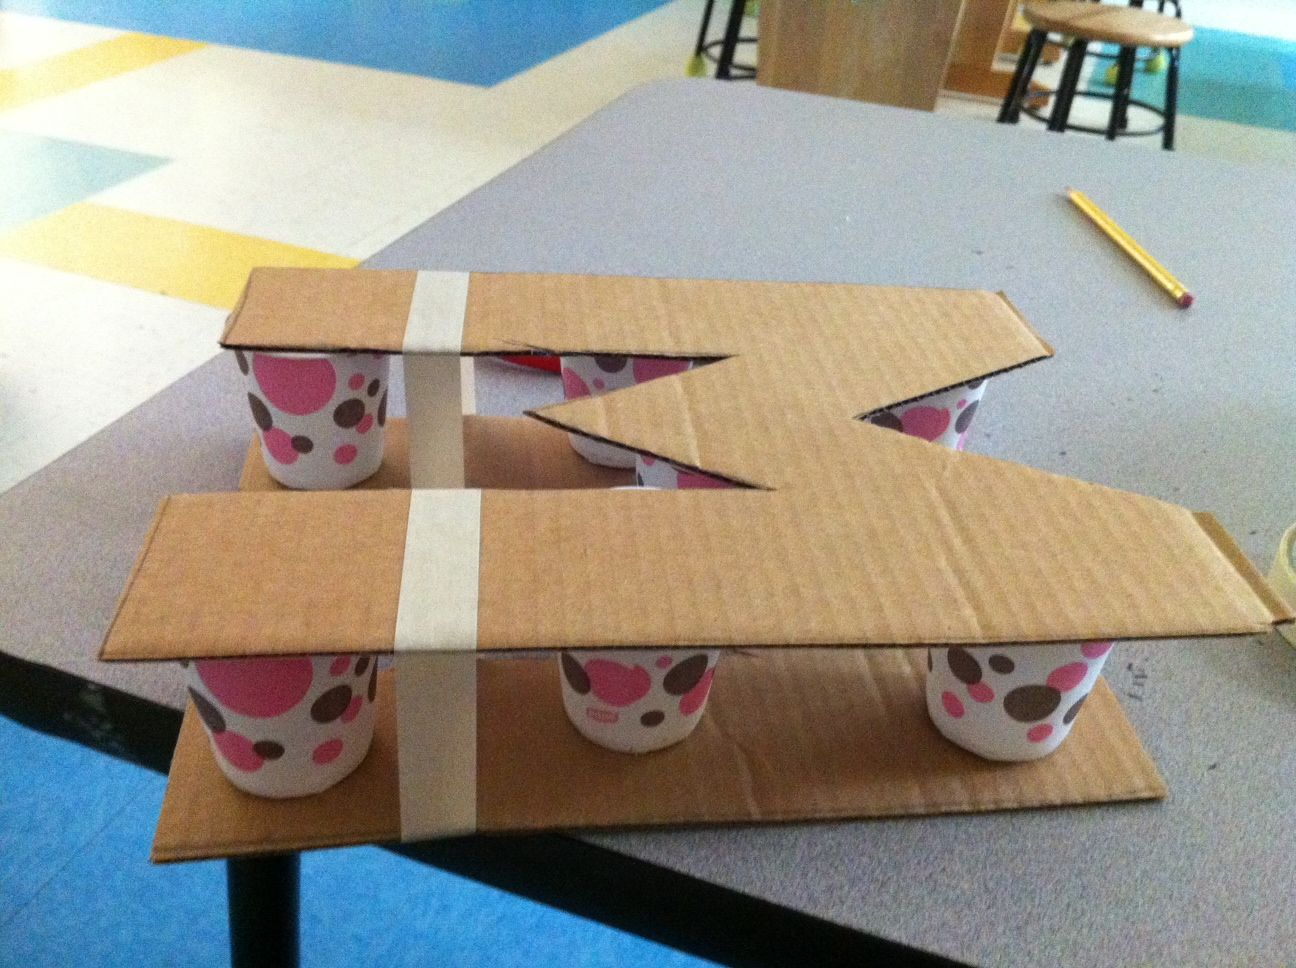 how to make paper mache lettersor big numbers id love to make giant numbers and have them either as decor in the classroom or use them for a group math